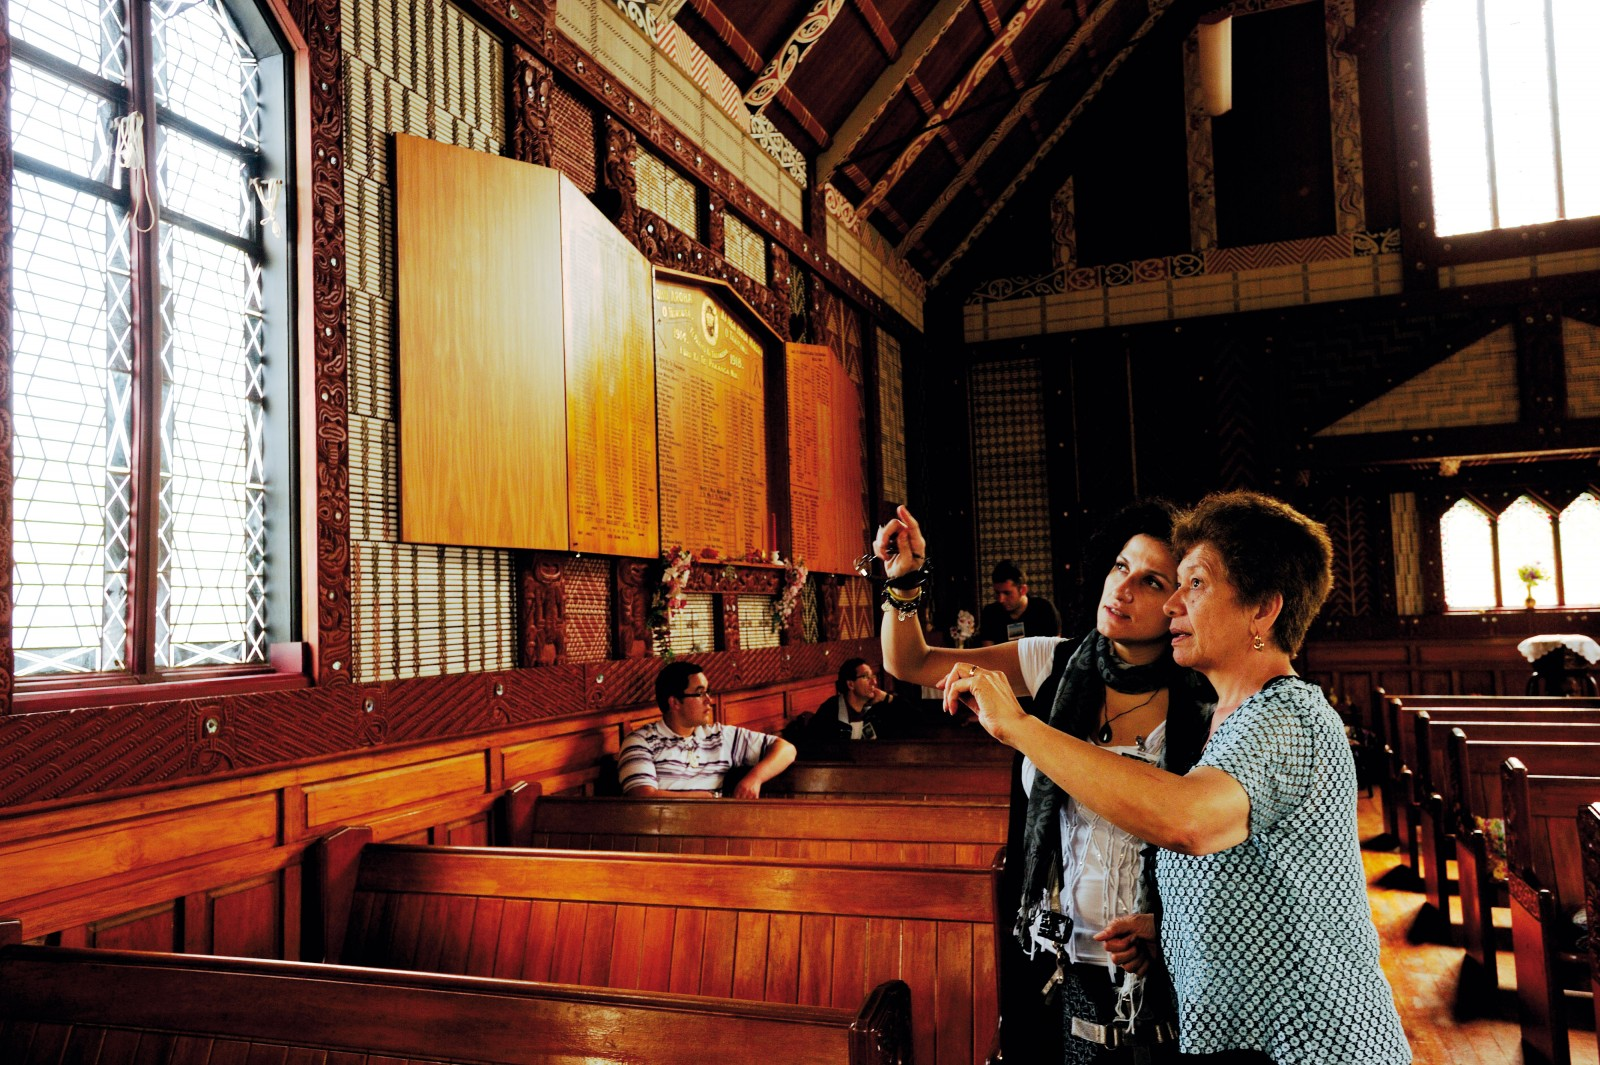 Paniora Maori Josephine Kalan explains to her Spanish cousin Monica Garcia the significance of the carvings and tukutuku panels in St Mary's church, Tikitiki, which is considered by Ngati Porou to be their cathedral.